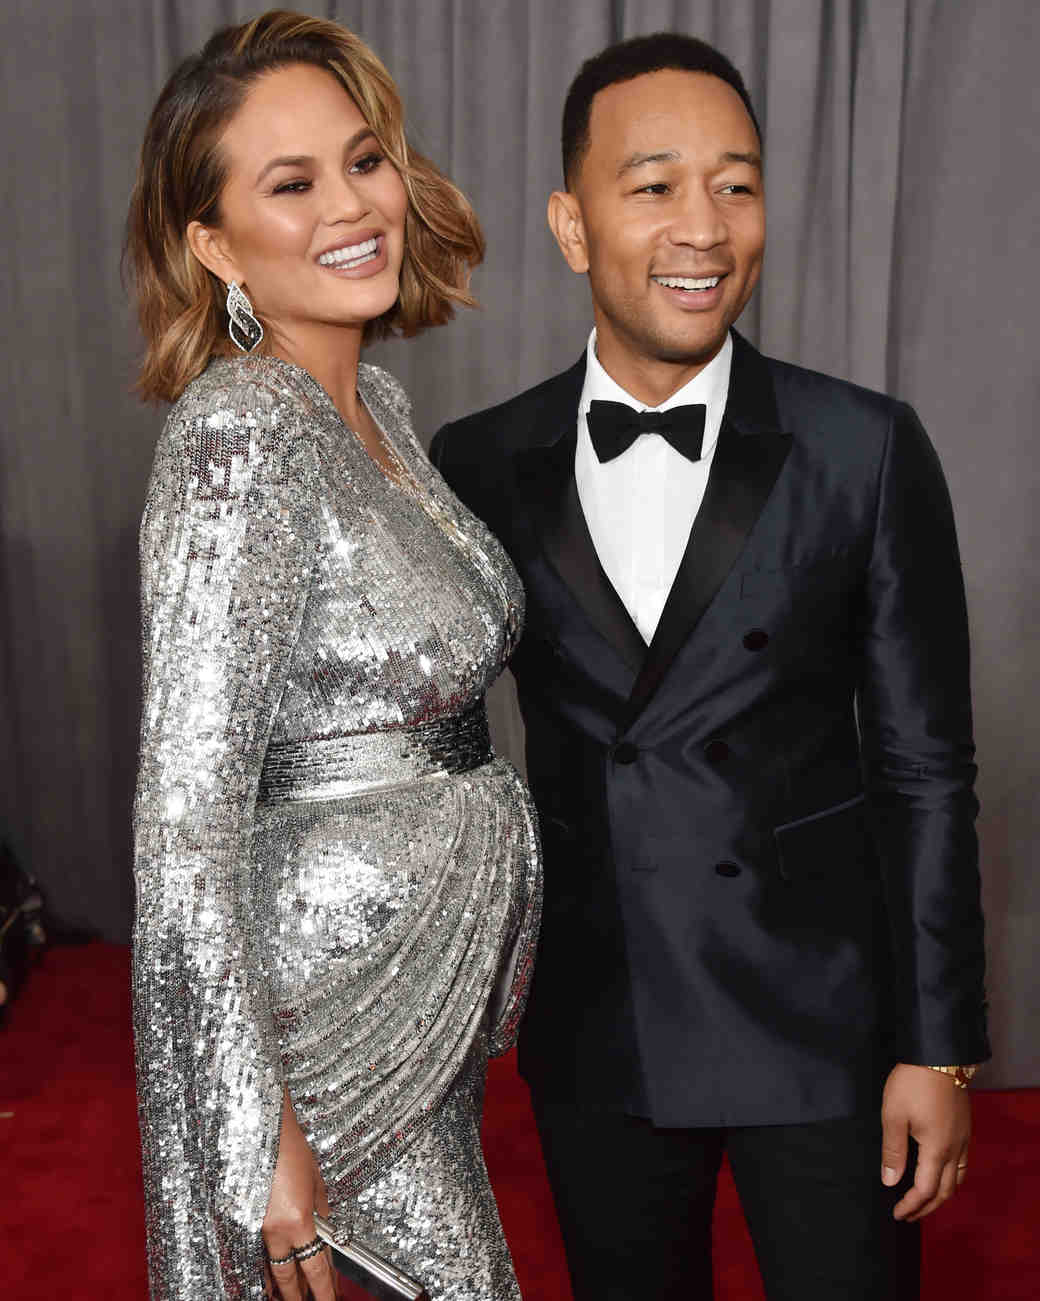 Chrissy Teigen and John Legend 2018 Grammy Awards